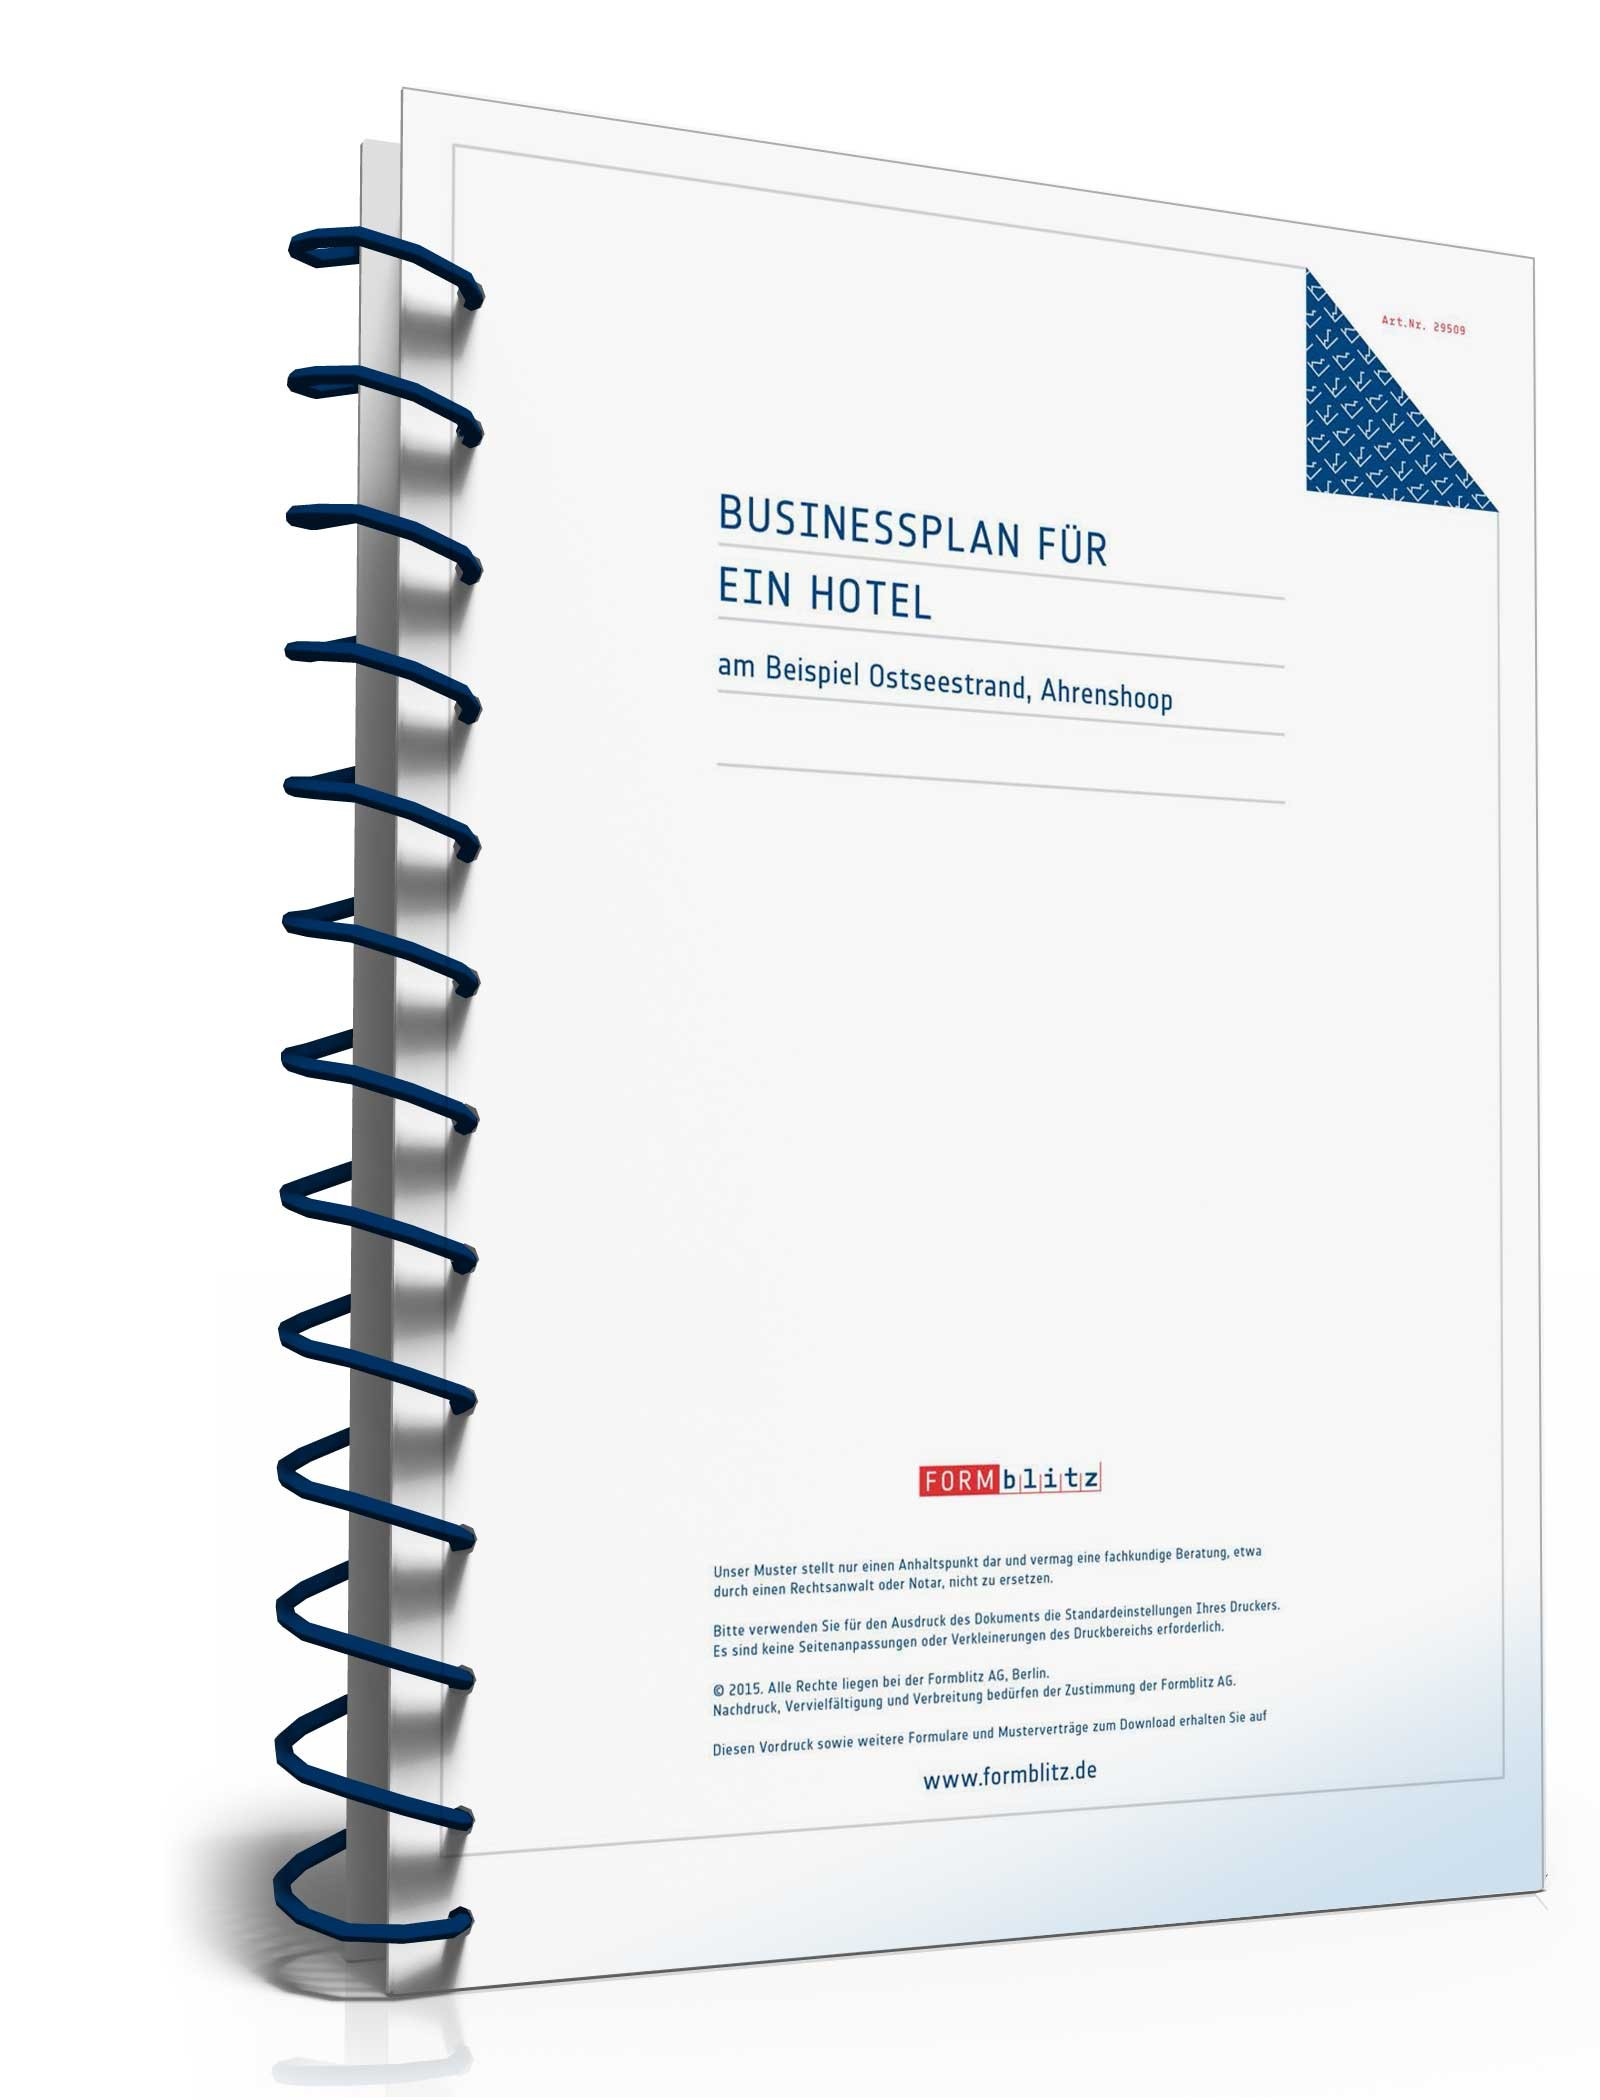 Businessplan Hotel Muster Aus Profihand Zum Download